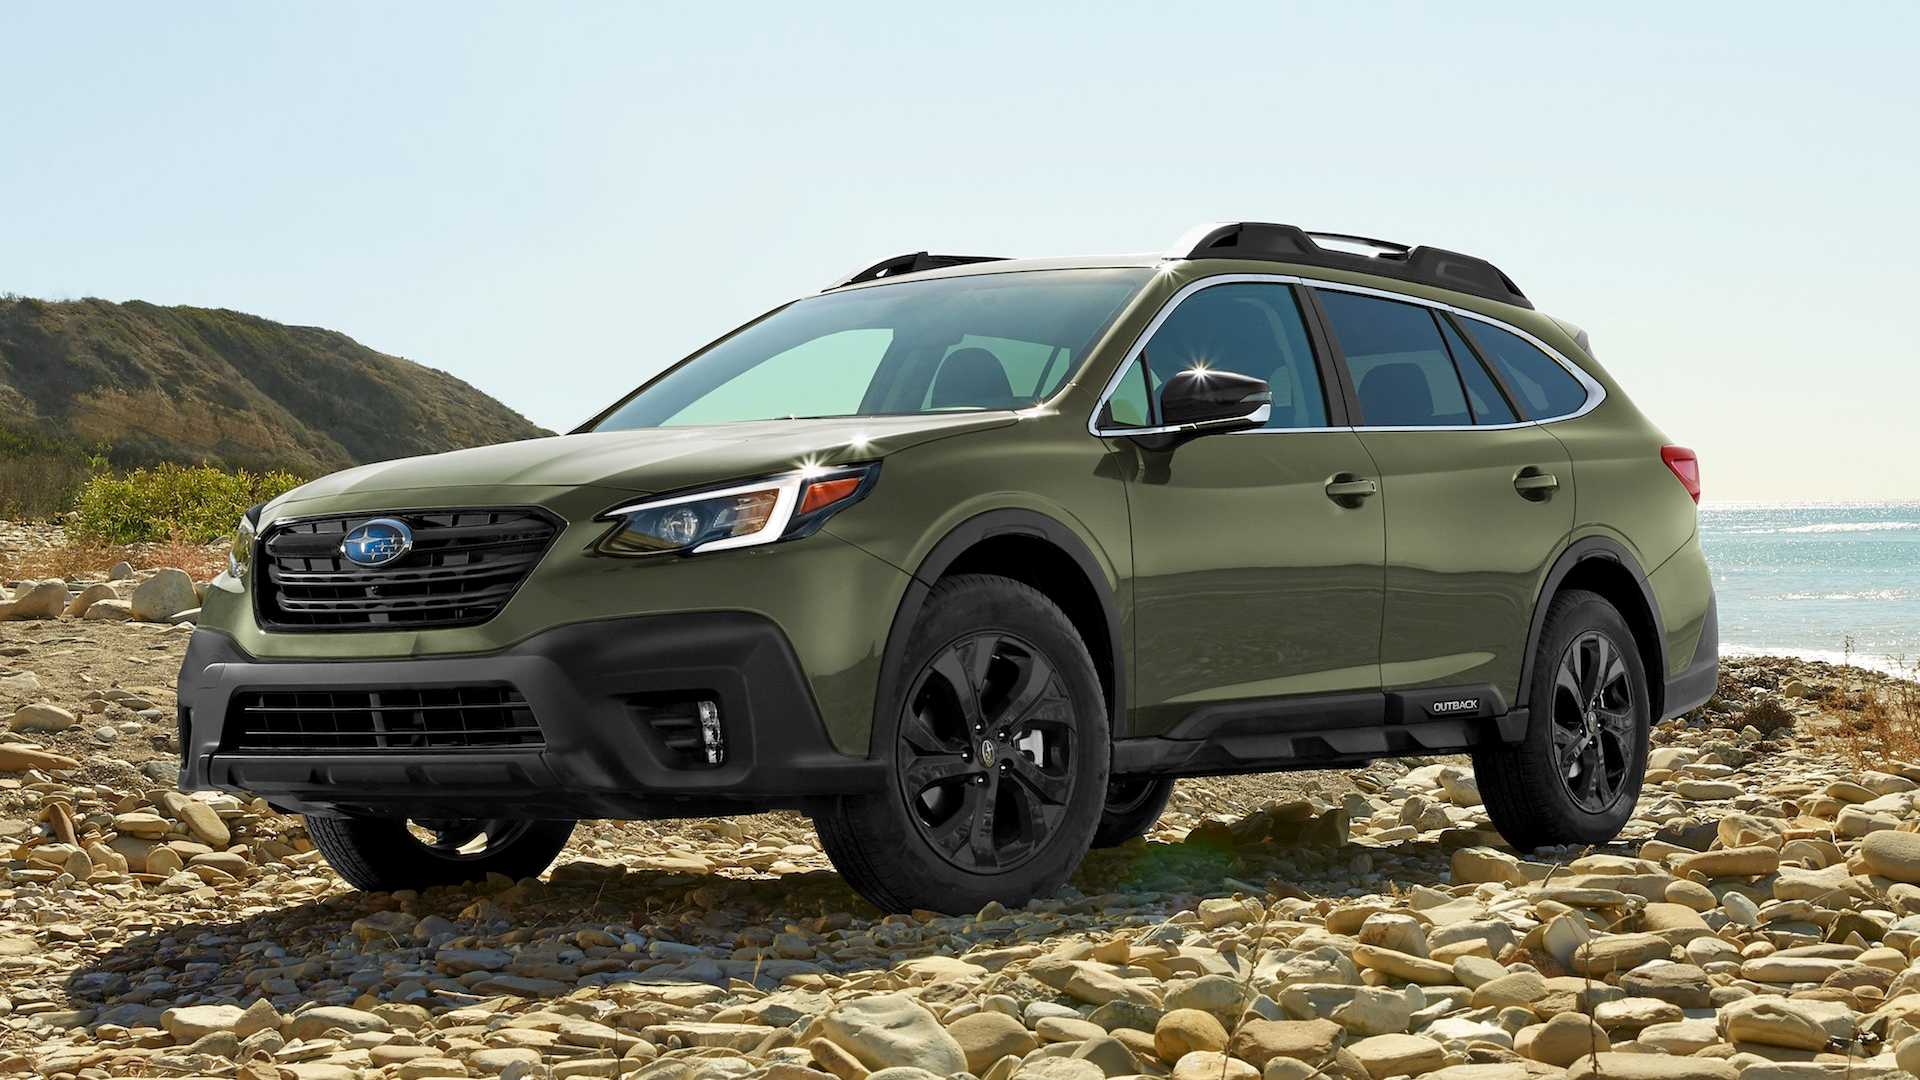 Most Expensive 2020 Subaru Outback Costs $48,456